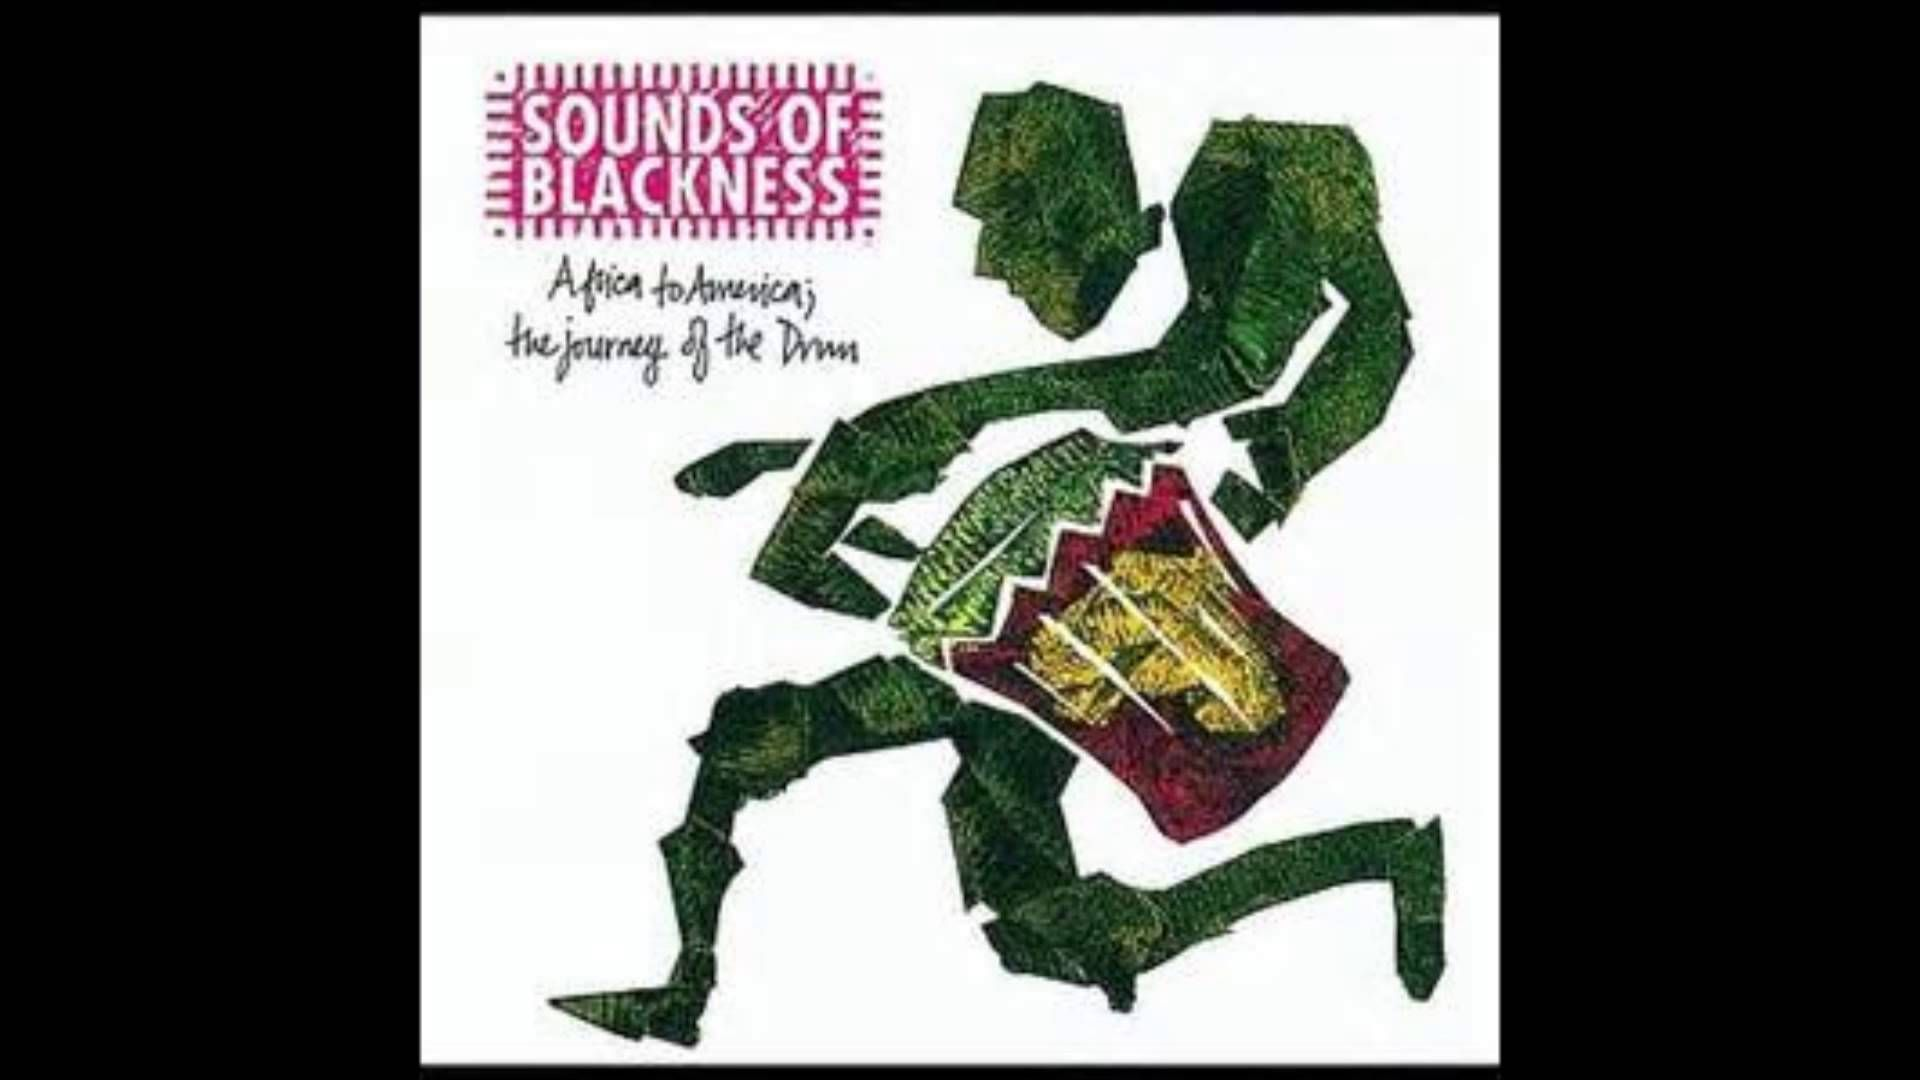 Sounds of Blackness The Lord Will Make A Way Lyrics